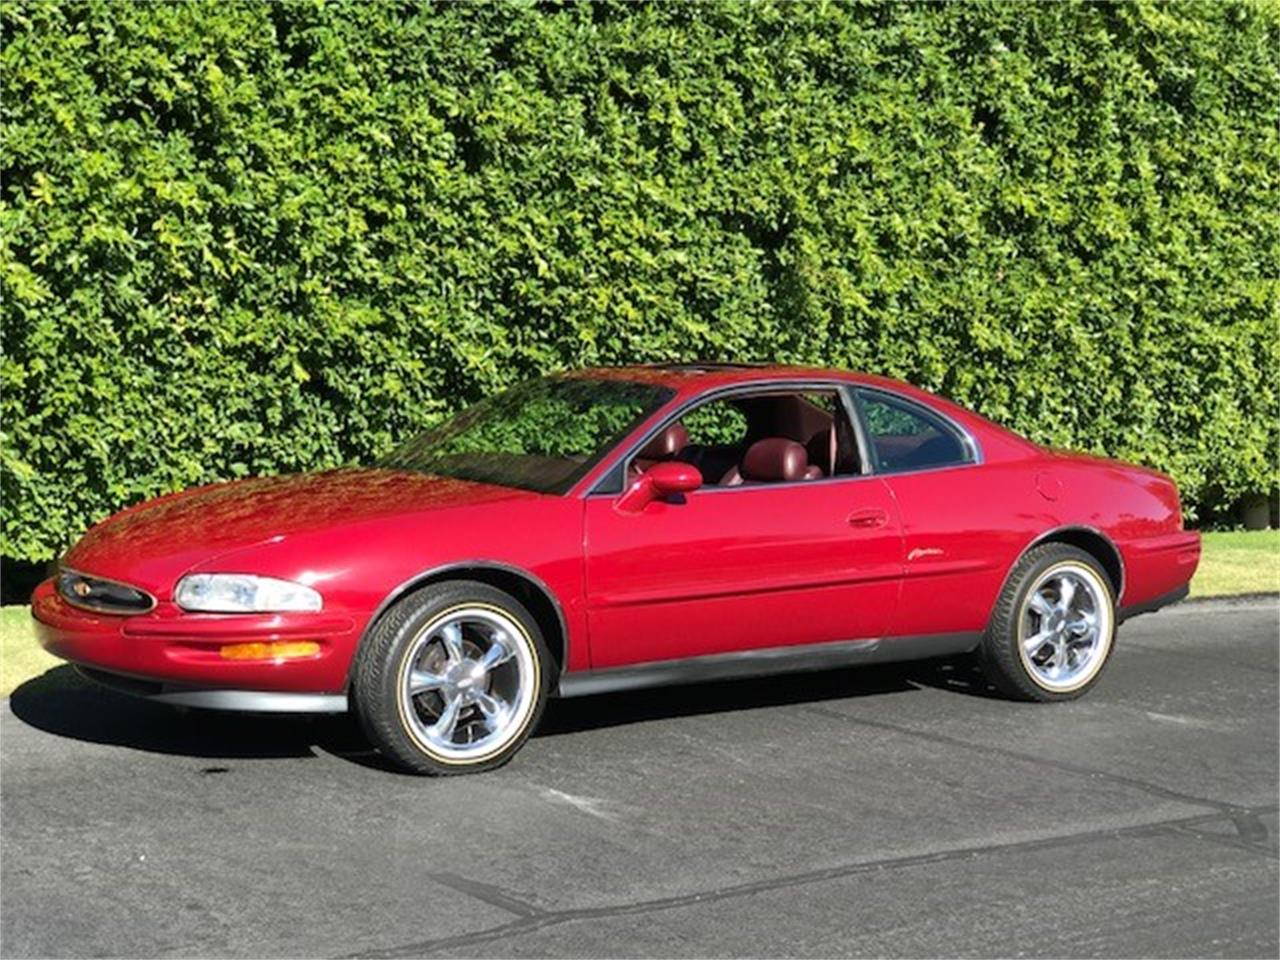 Large Picture of 1996 Buick Riviera located in Arizona - MOEE